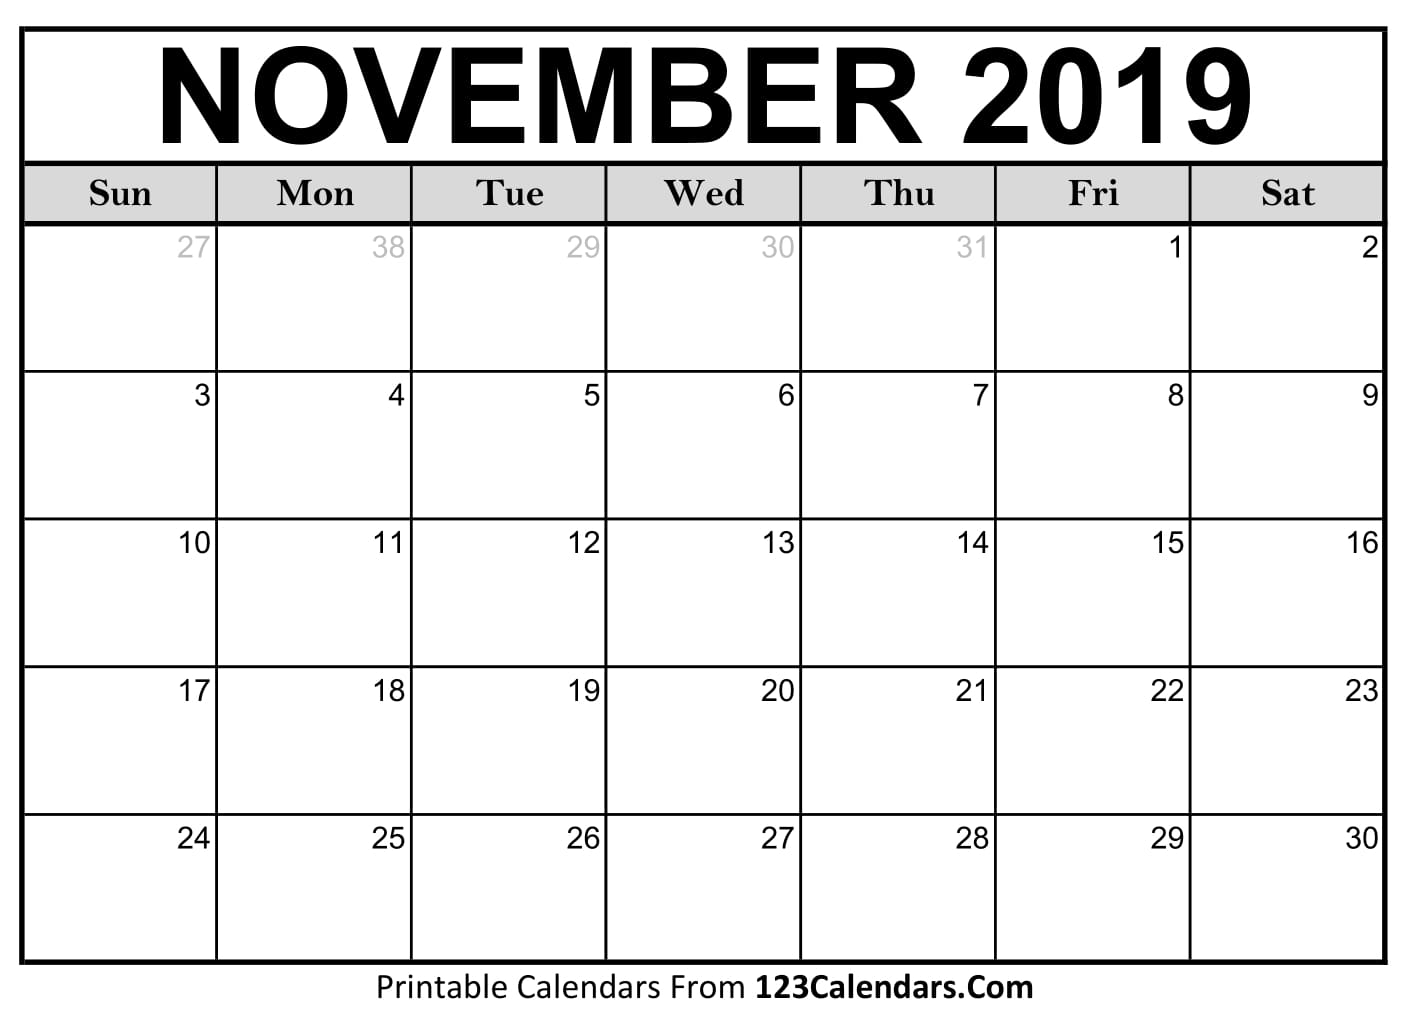 November 2018 Calendar https://www.123calendars.com/images/2018/November/november-2018-calendar-1.jpg